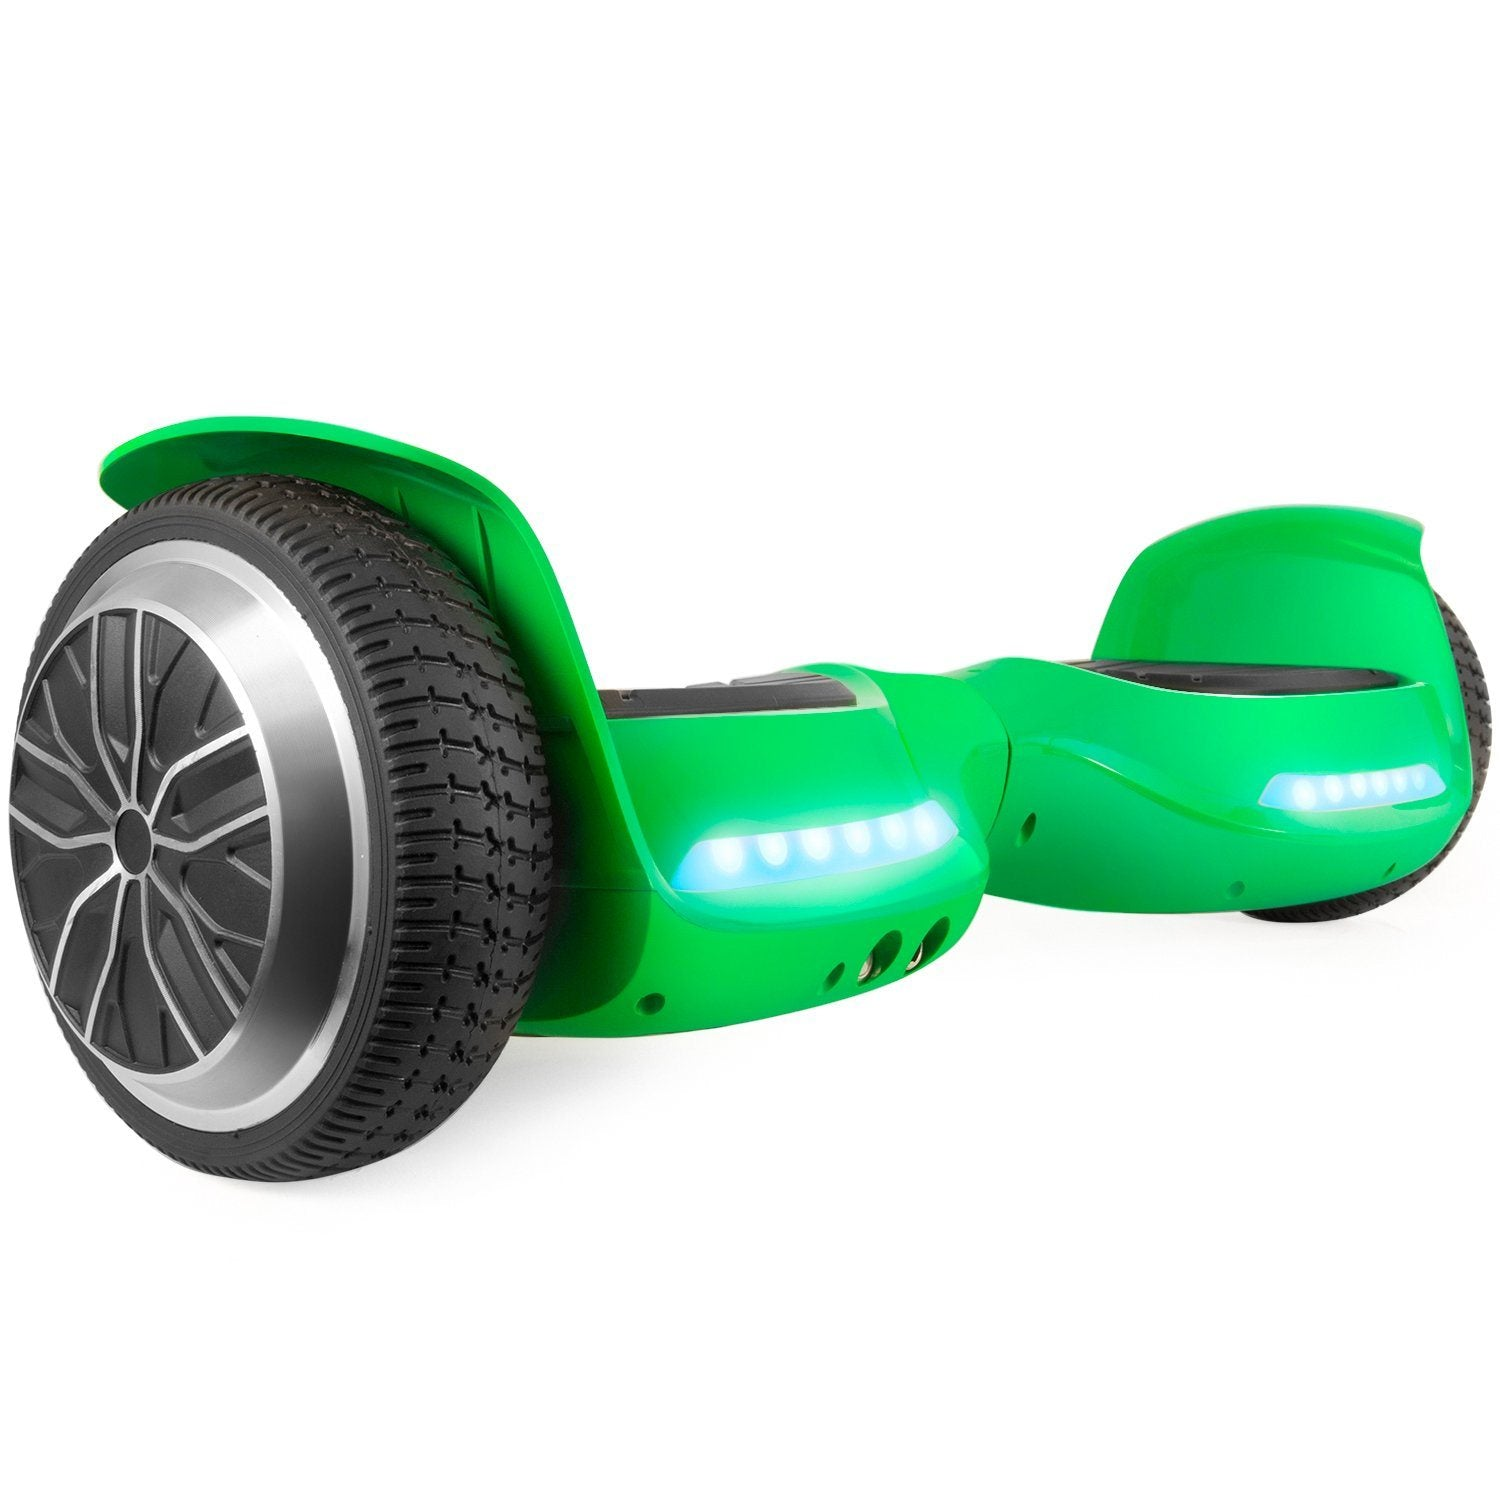 2018 Green T67SE Safe Hoverboard UL2272 certified with Bluetooth Speaker Free Shipping. - HoverBoard4sale